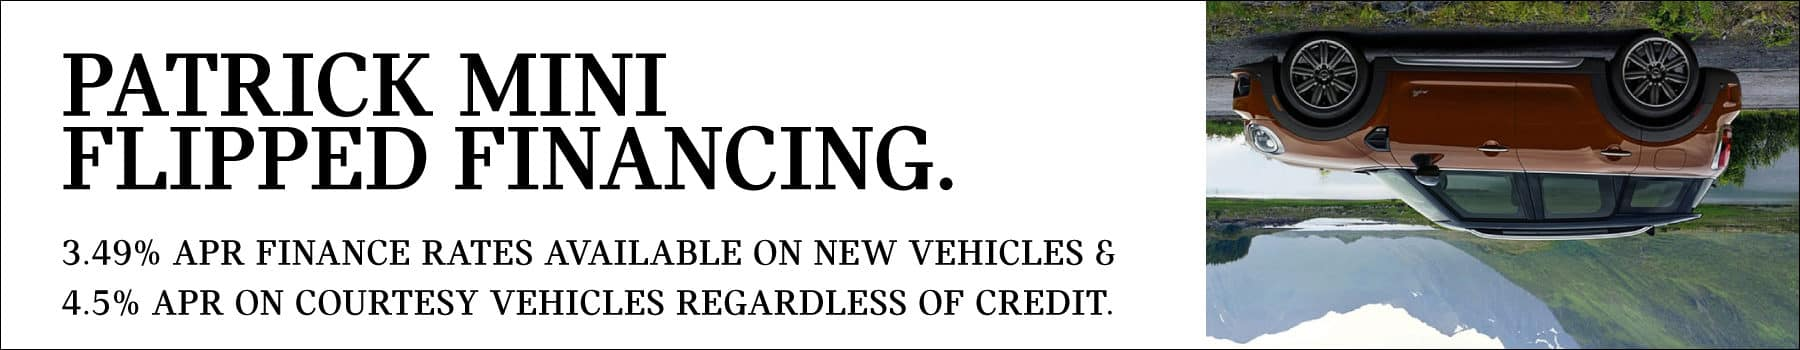 chestnut brown mini countryman upside in image advertising patrick mini flipped financing. 3.49% apr on new vehicles and 4.5% on courtest vehicles regardless of credit score